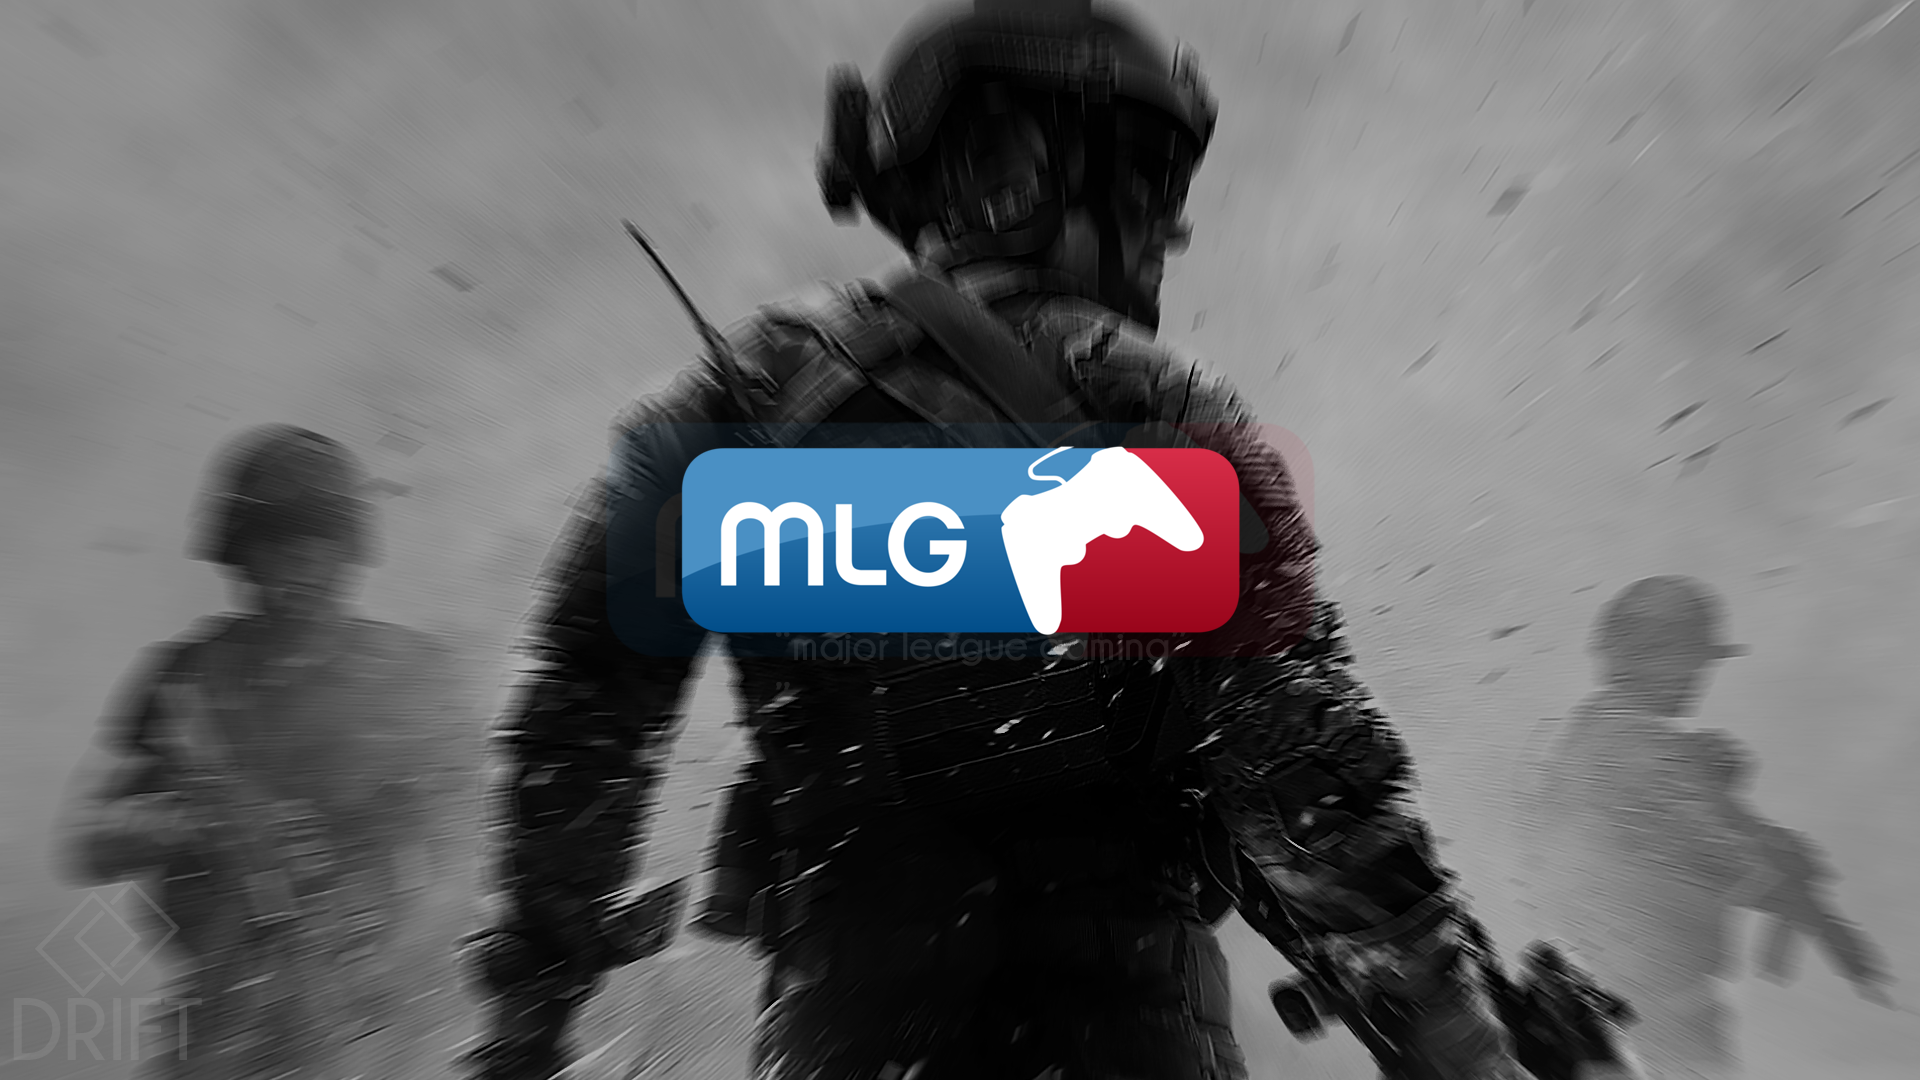 Mlg Backgrounds Free Download Mlg Background Backgrounds Free Wallpaper